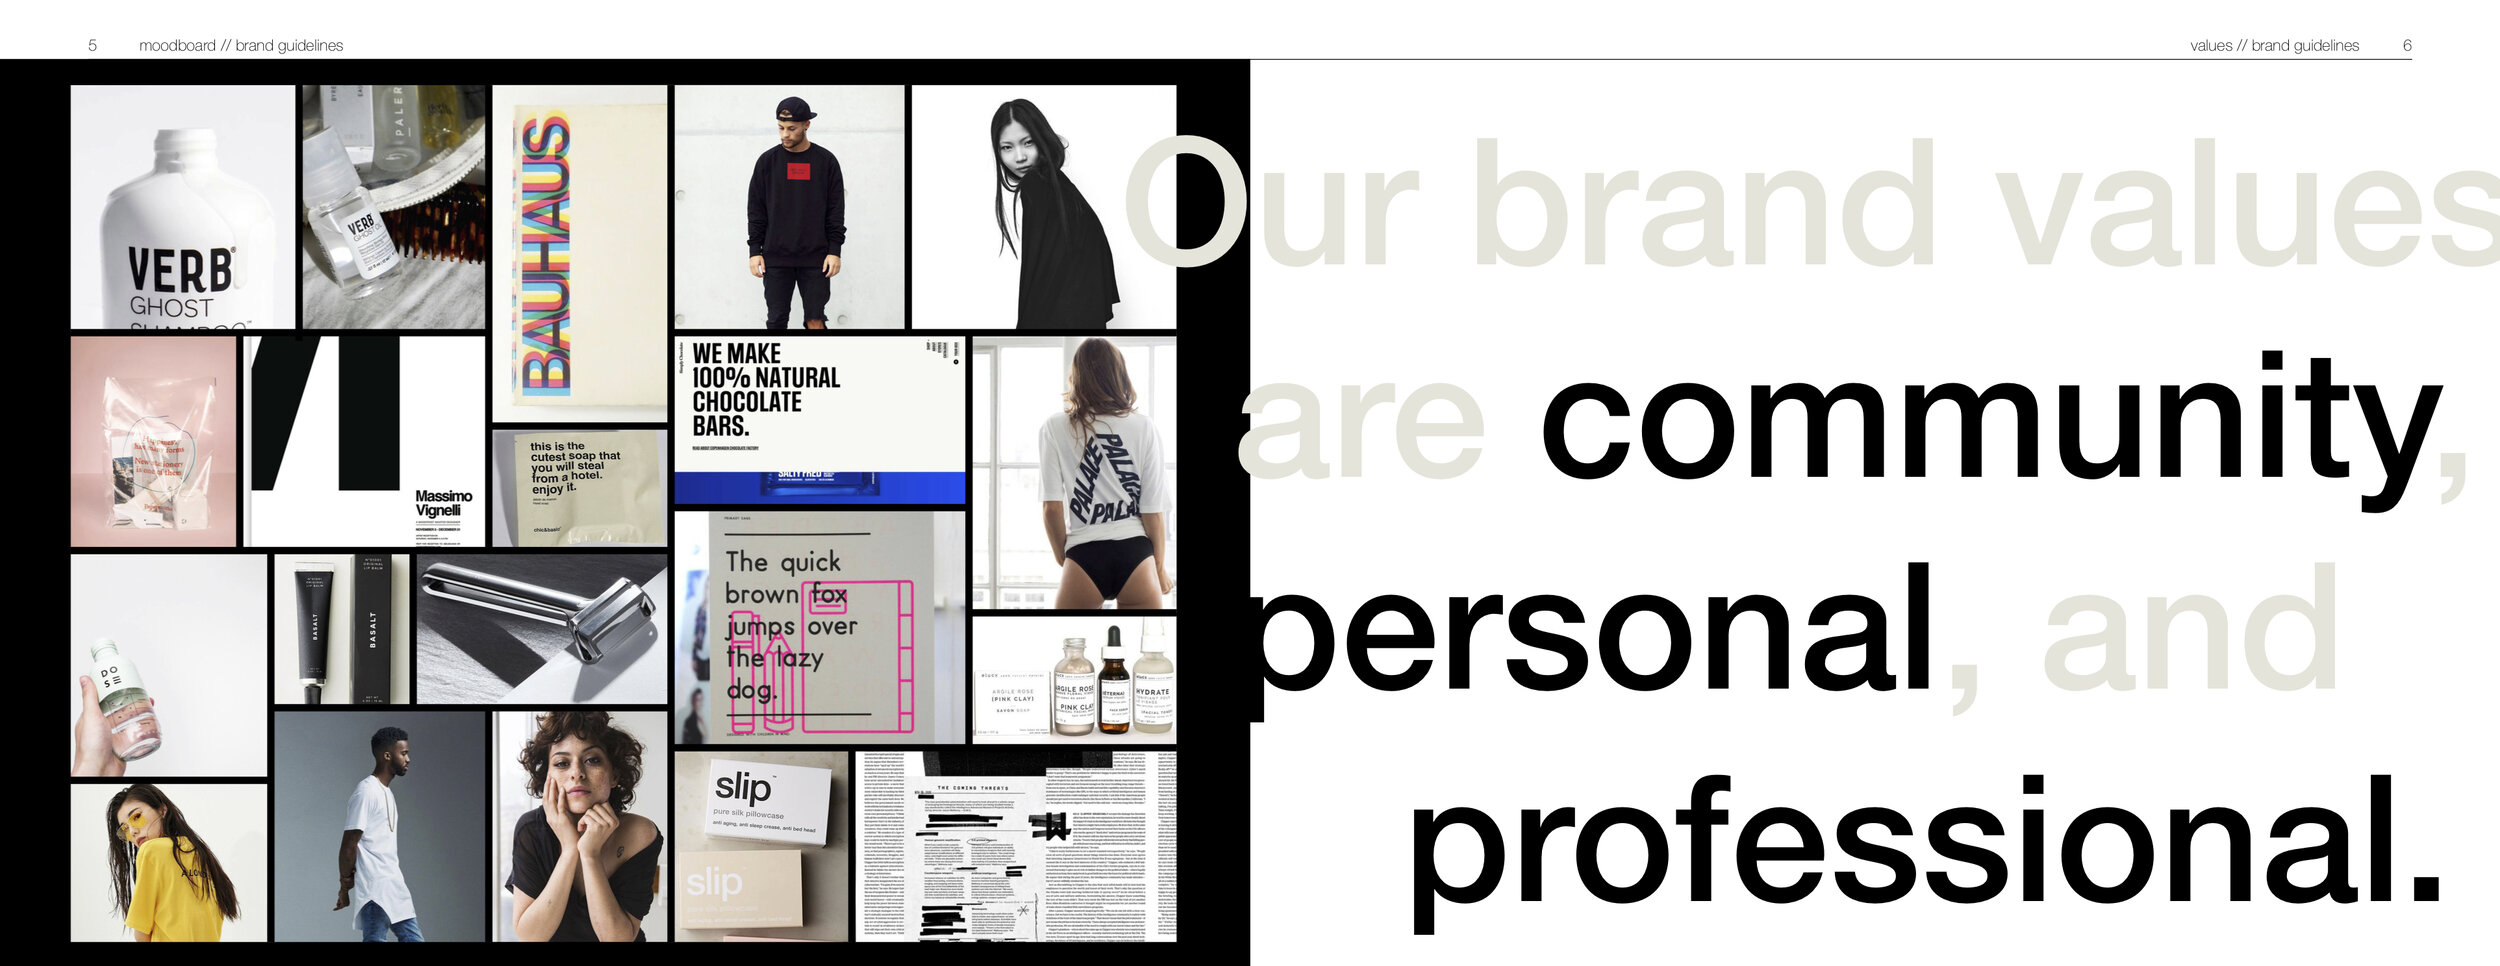 1AM|BrandGuideSpreads (dragged) 4.jpg